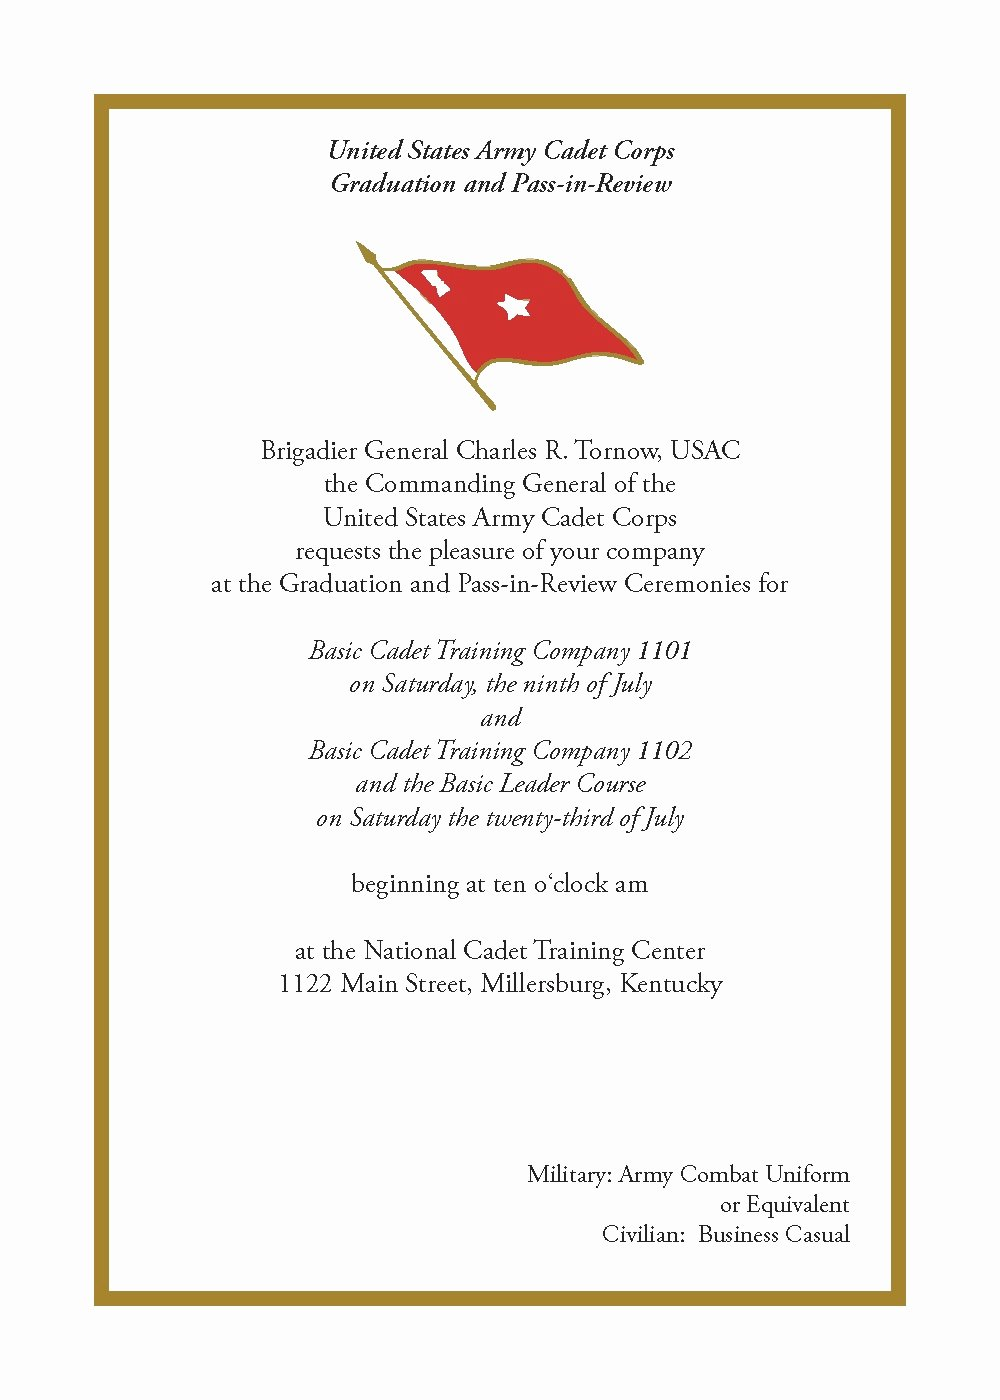 Army Officer Promotion Certificate Template Beautiful U S Army Cadet Corps July 2011